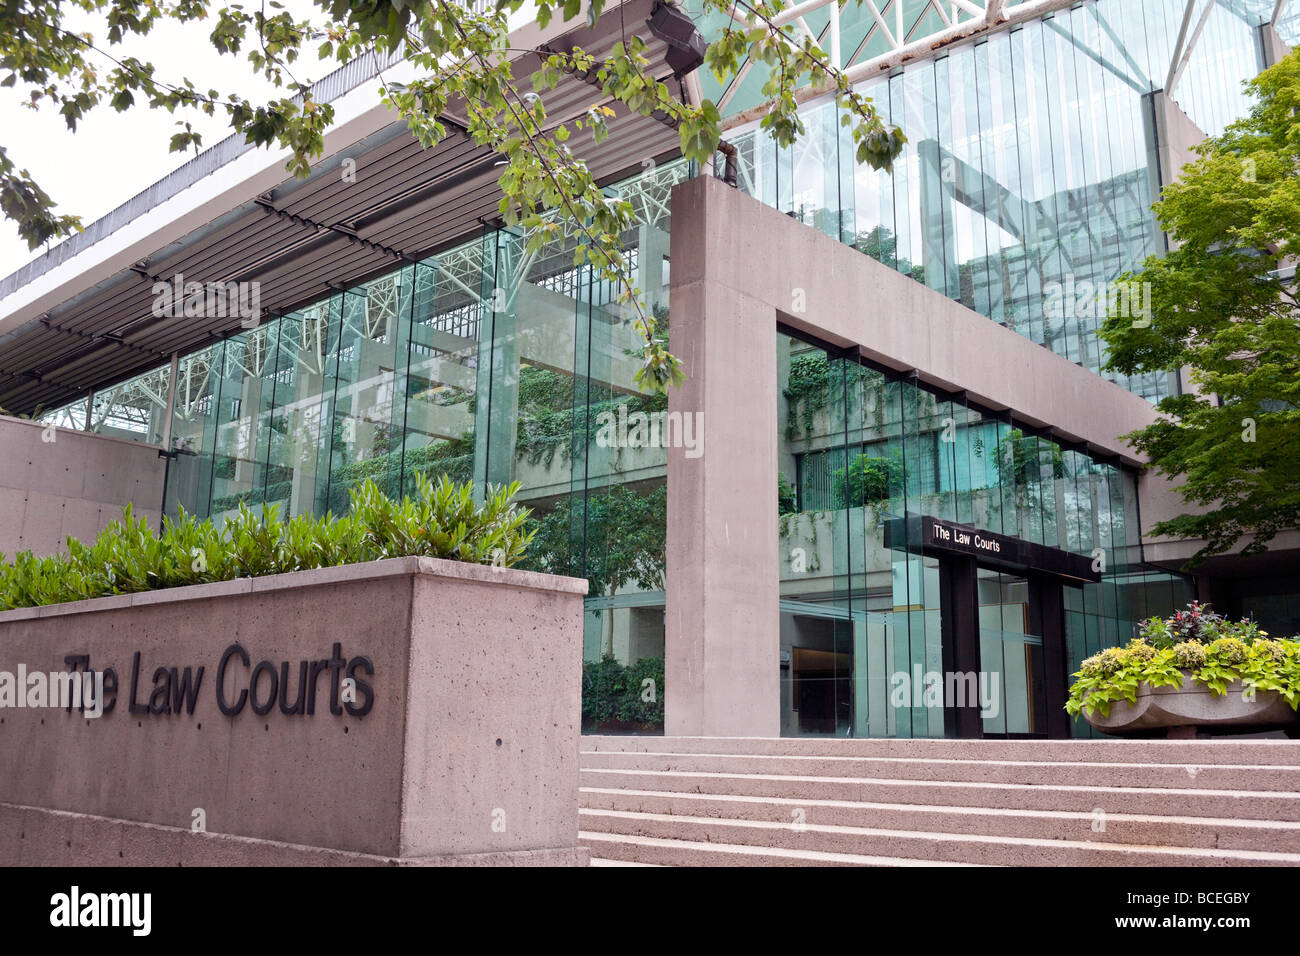 Provincial law courts, Robson Square, Vancouver, BC, Canada - Stock Image